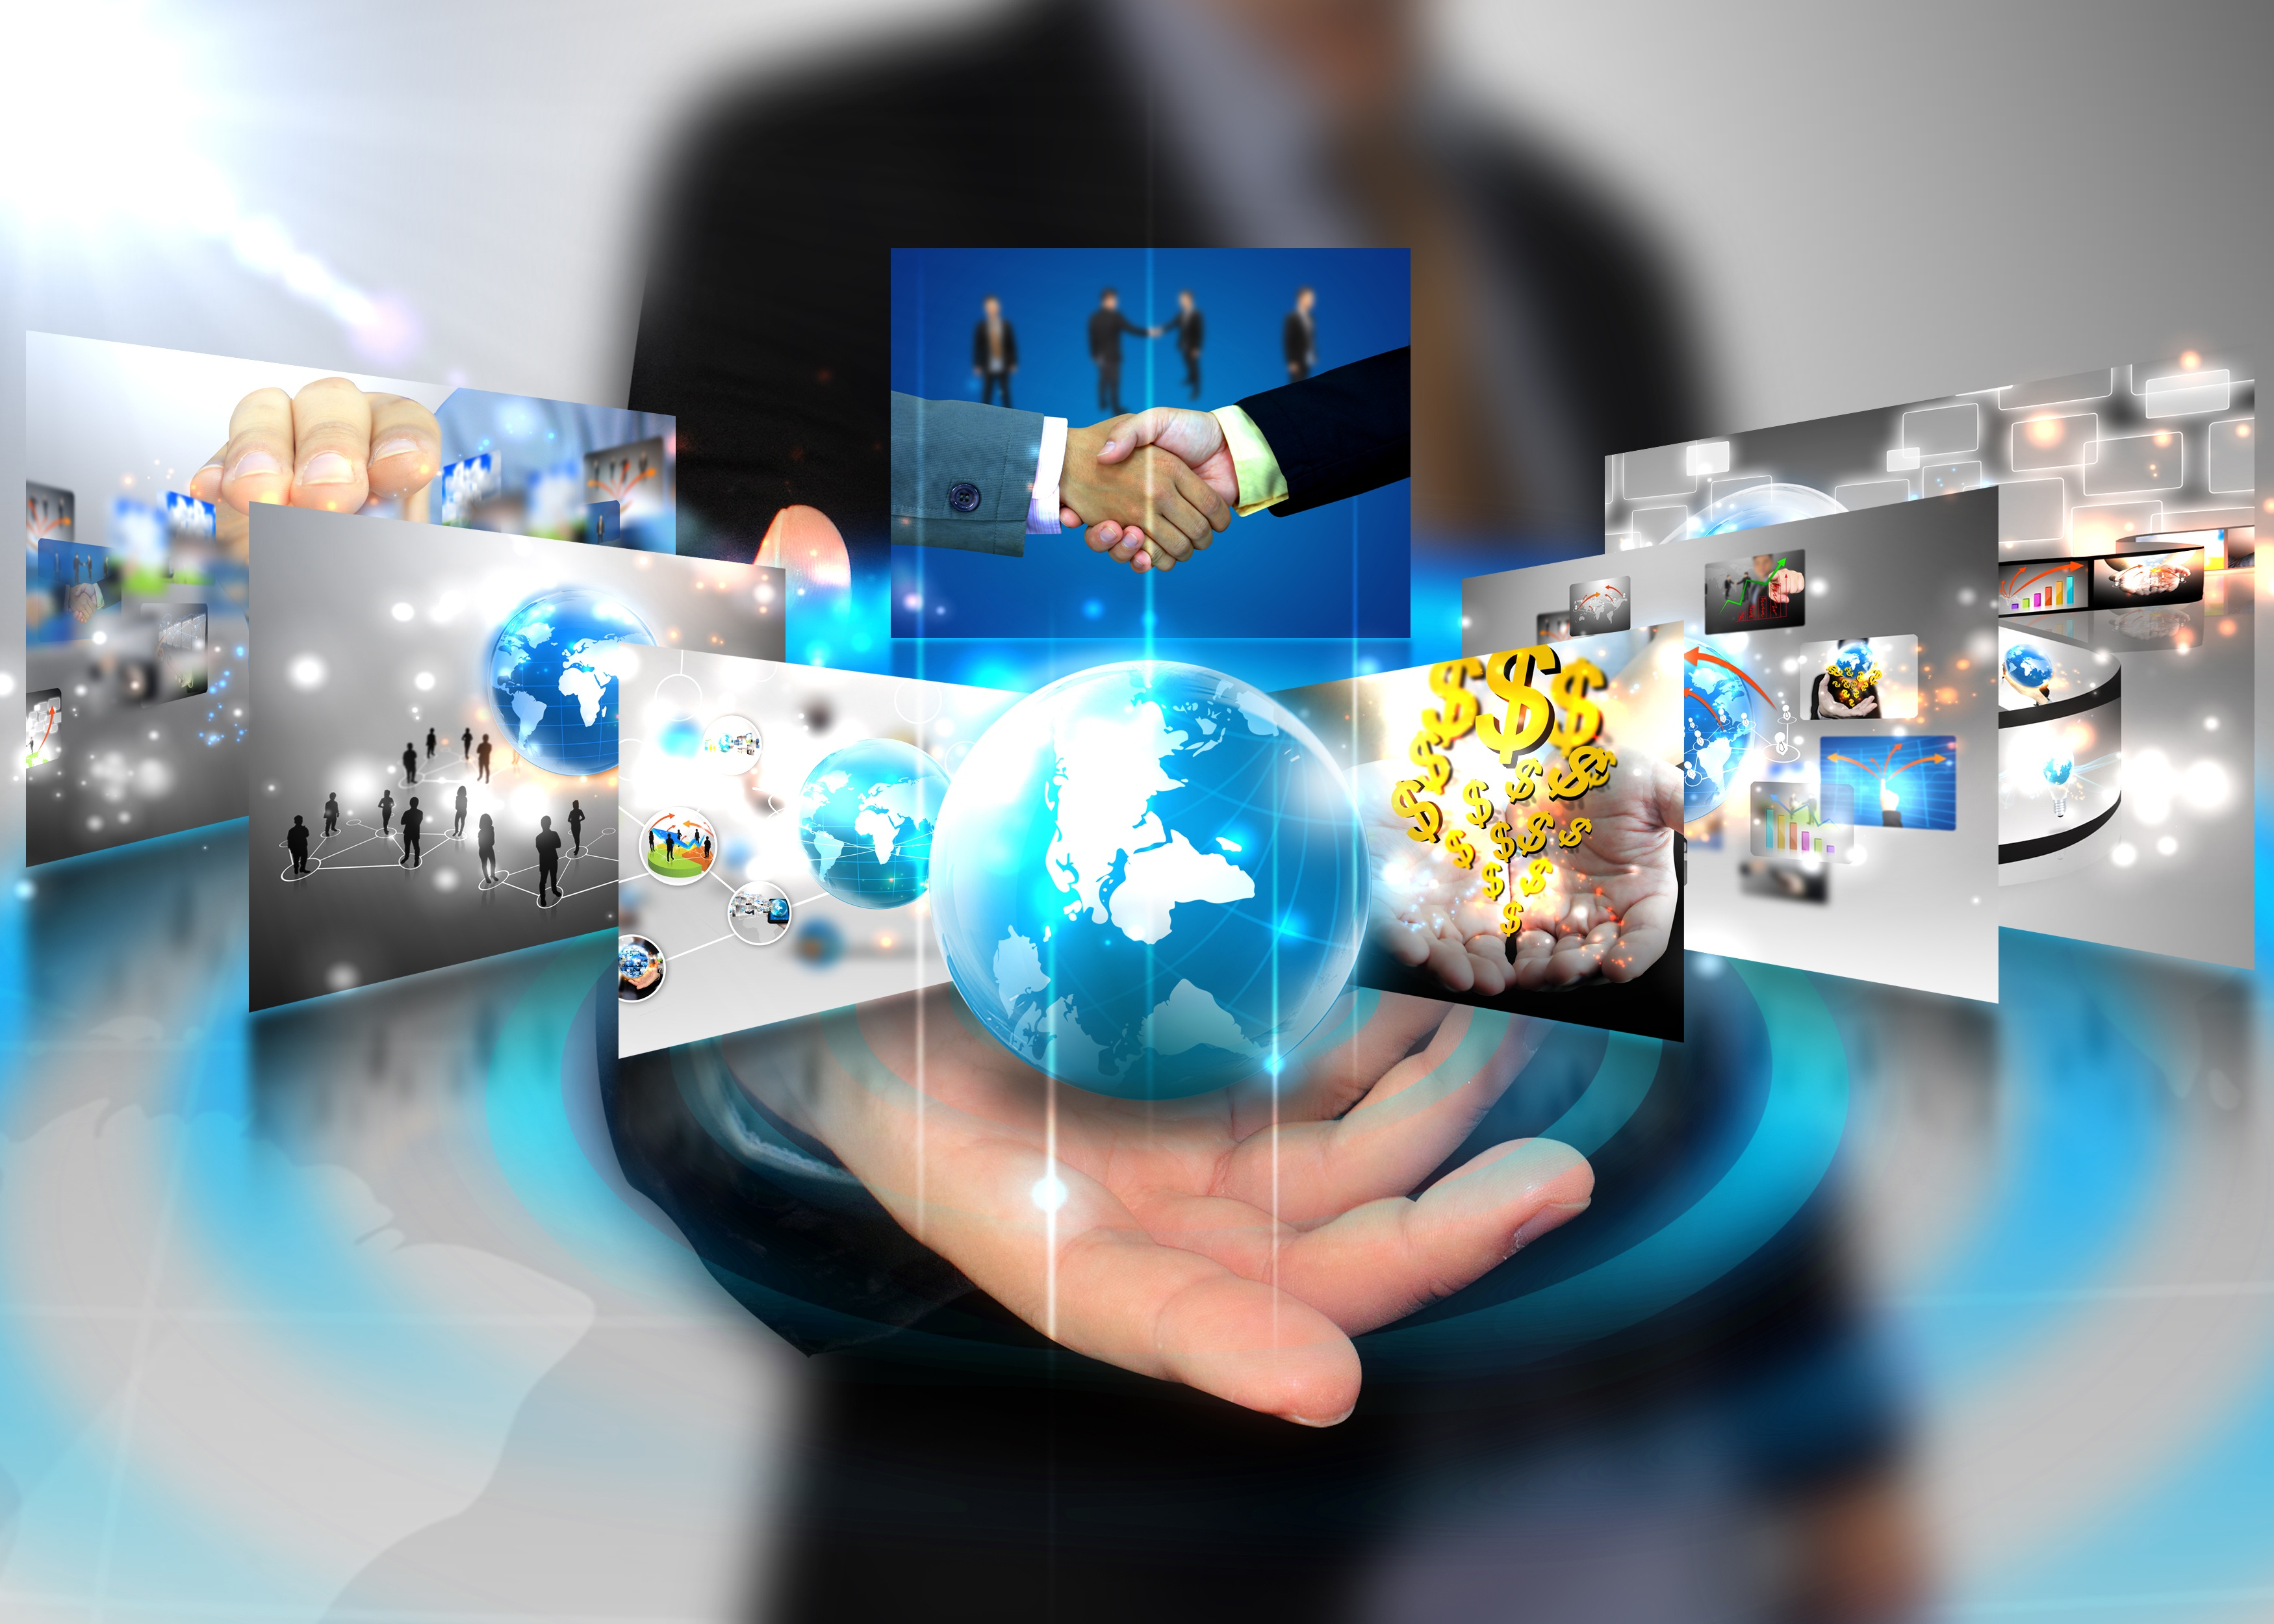 how does the use of internet intranets and extranets by companies today support their business proce